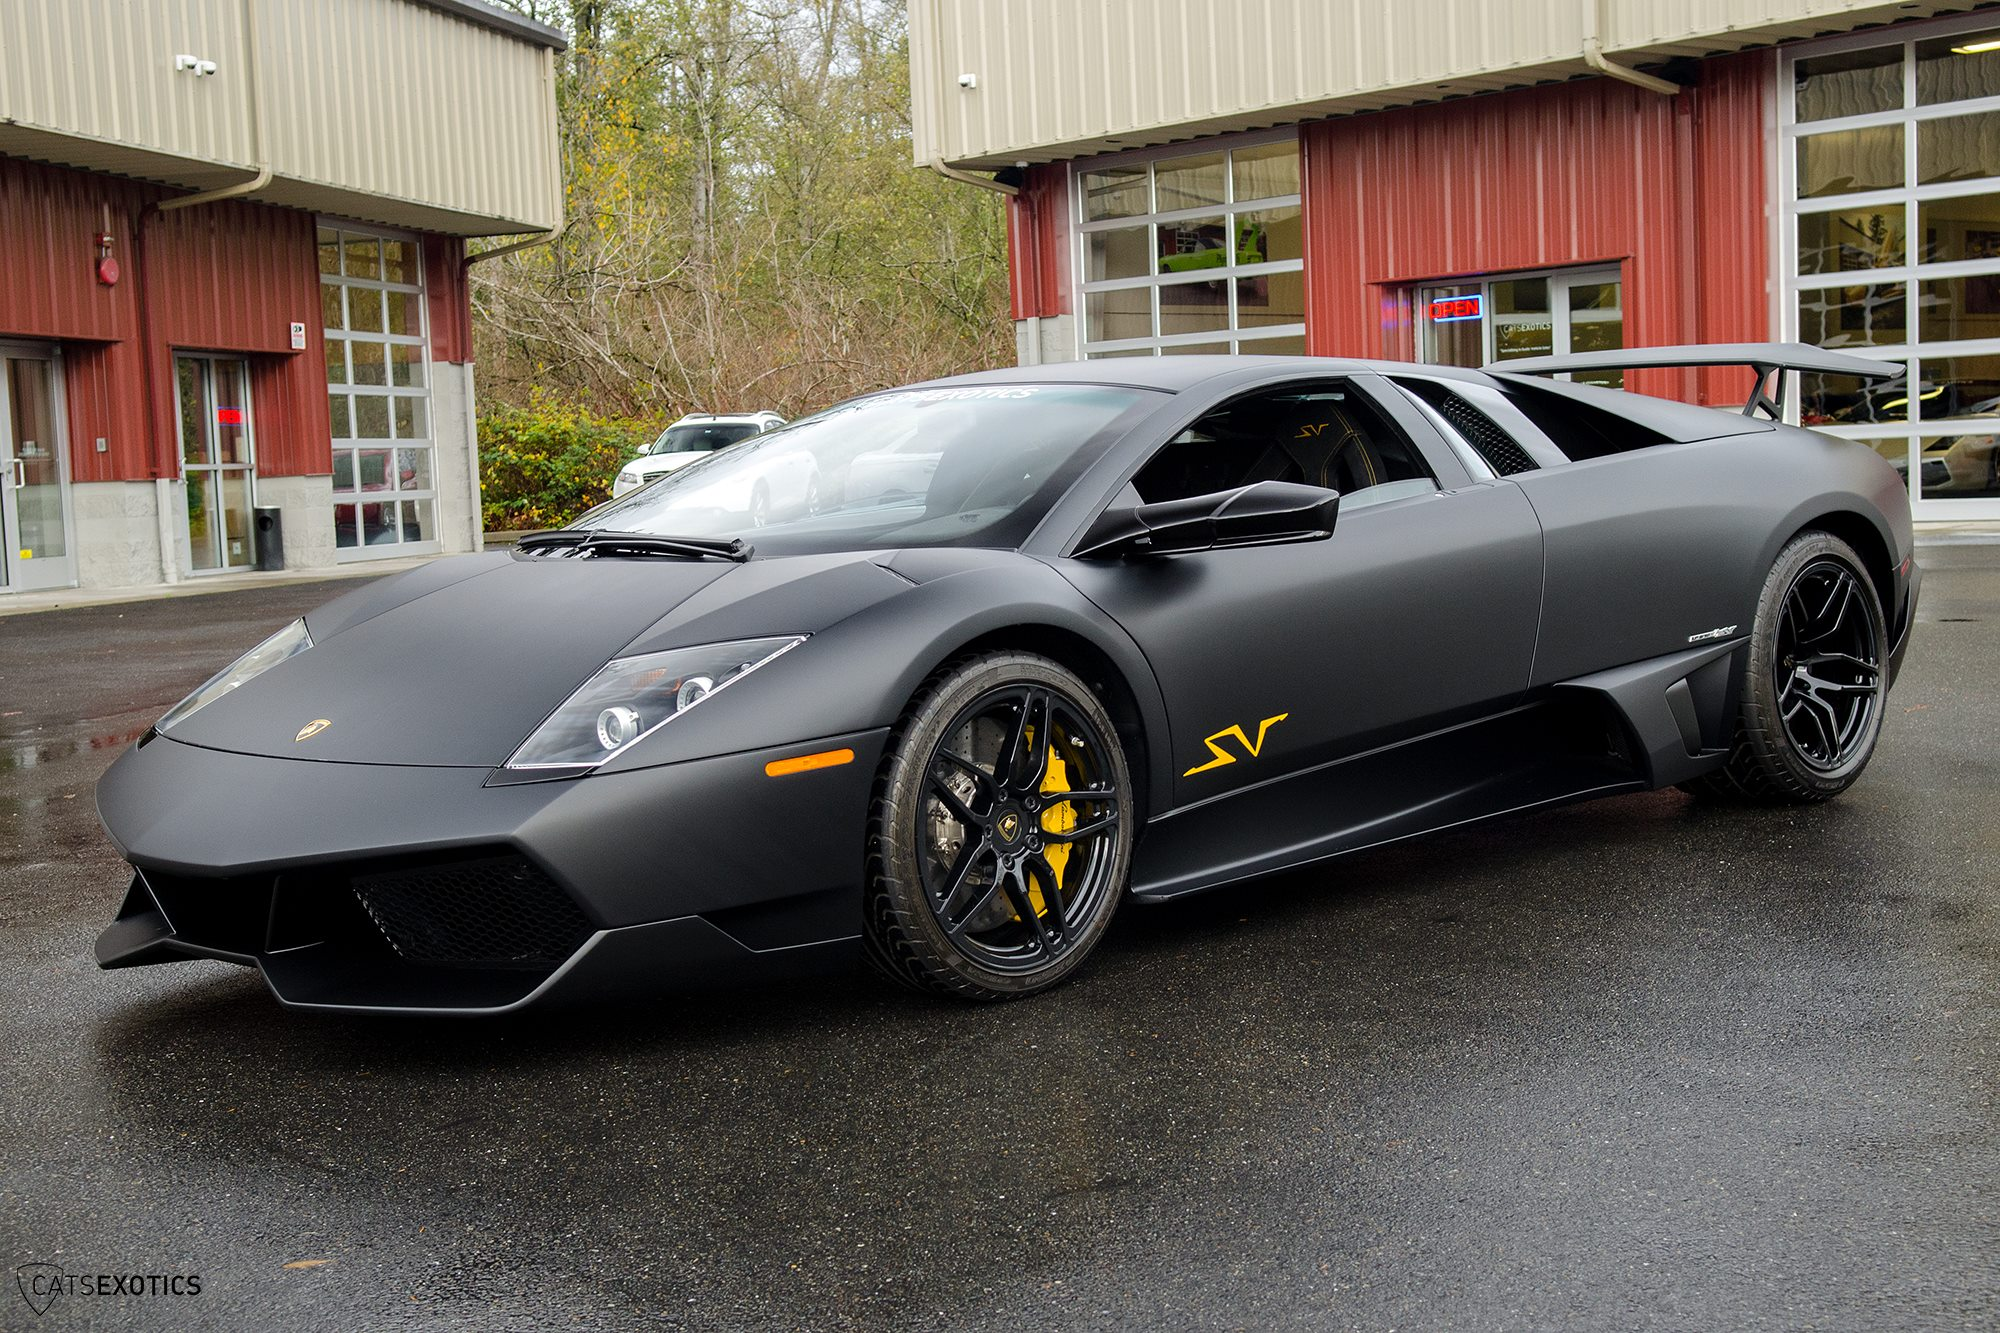 Nero Nemesis Lamborghini Murcielago SV For Sale at $574,888 - GTspirit